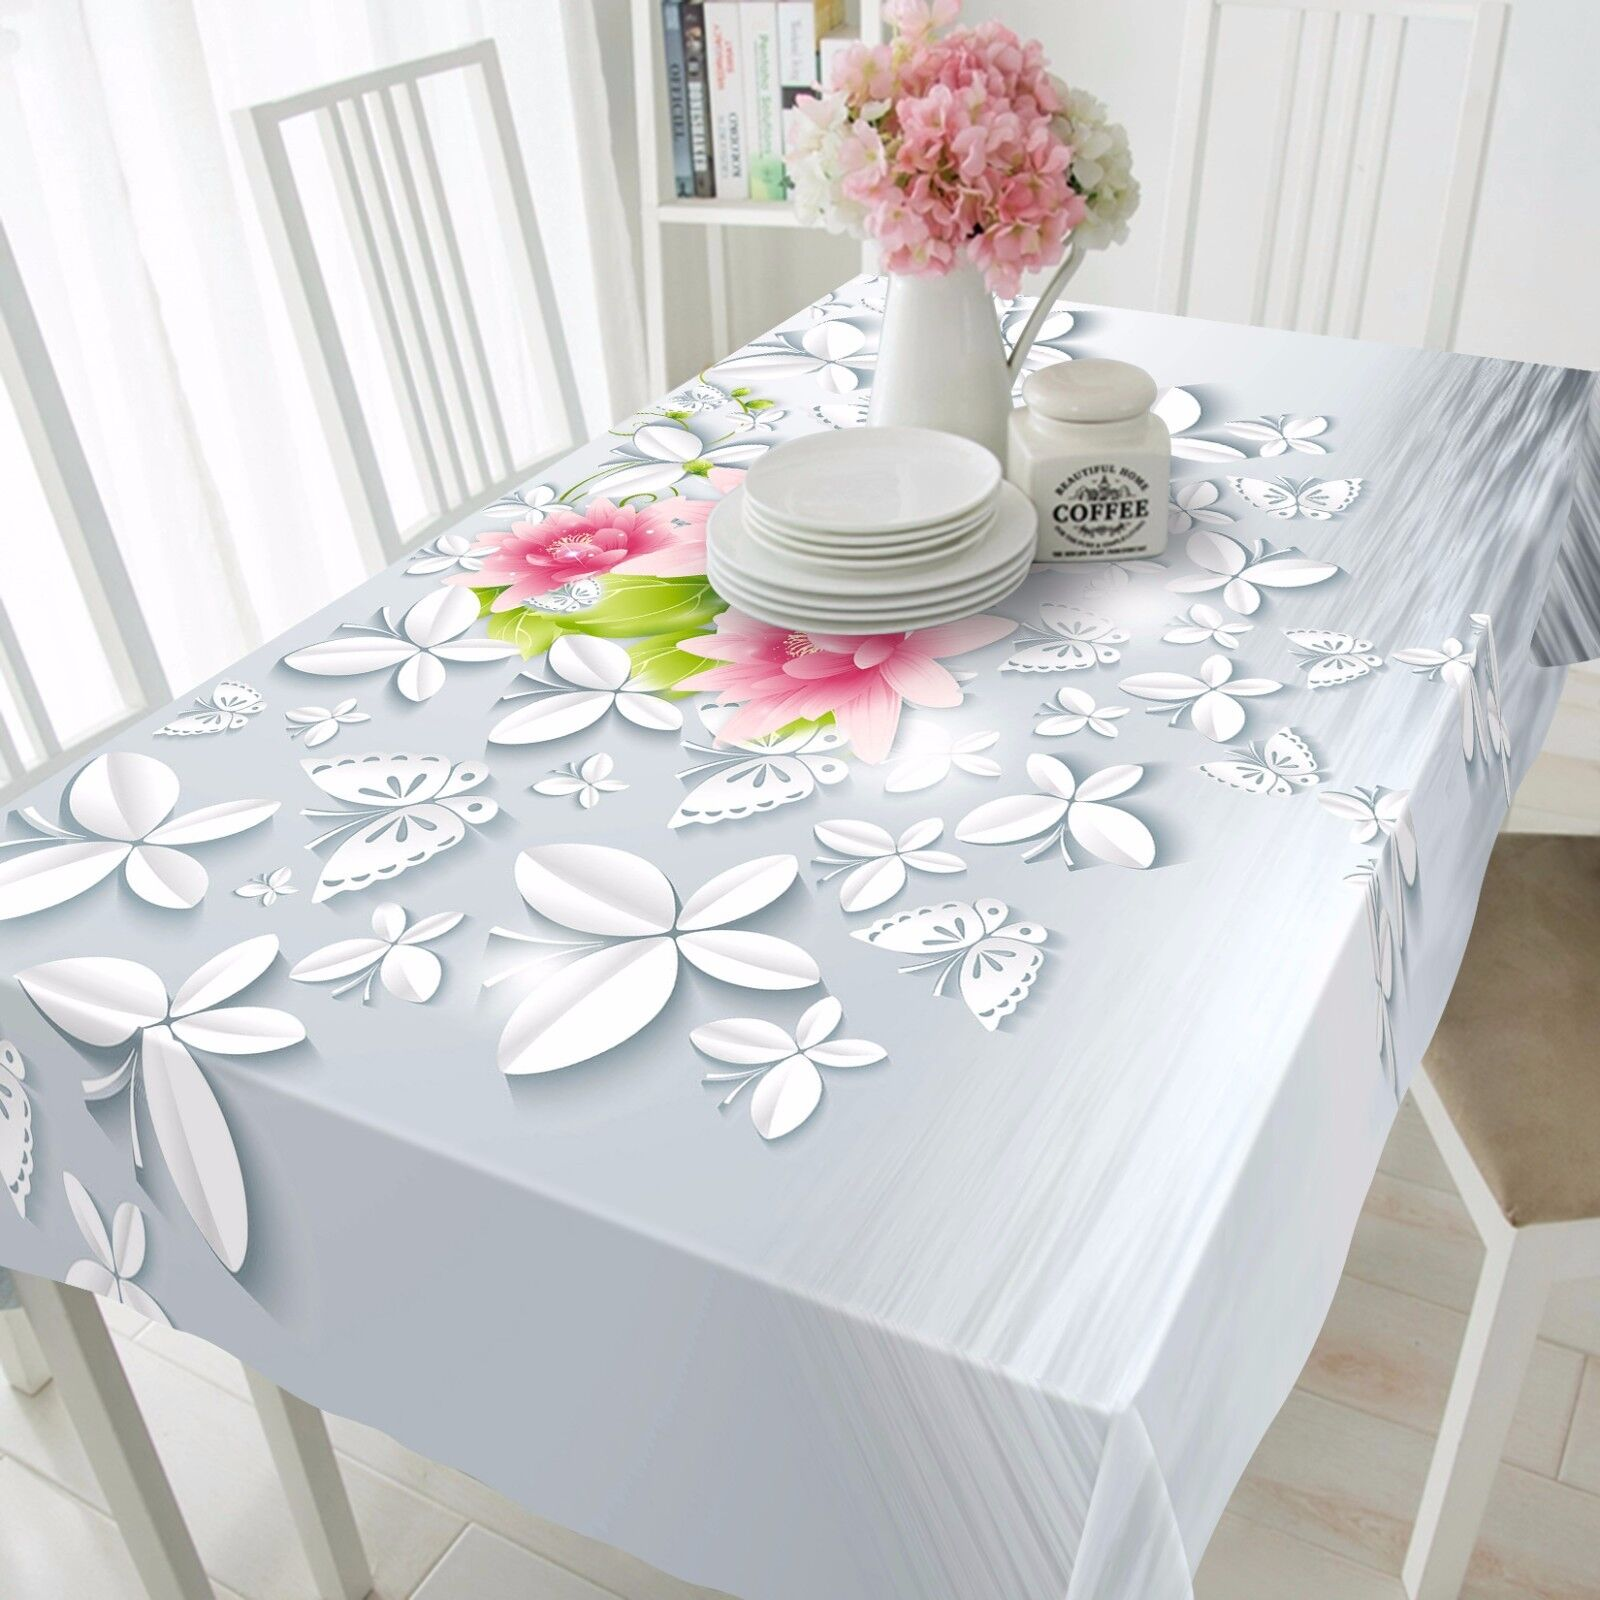 3D Flowers 804 Tablecloth Table Cover Cloth Birthday Party Event AJ WALLPAPER UK